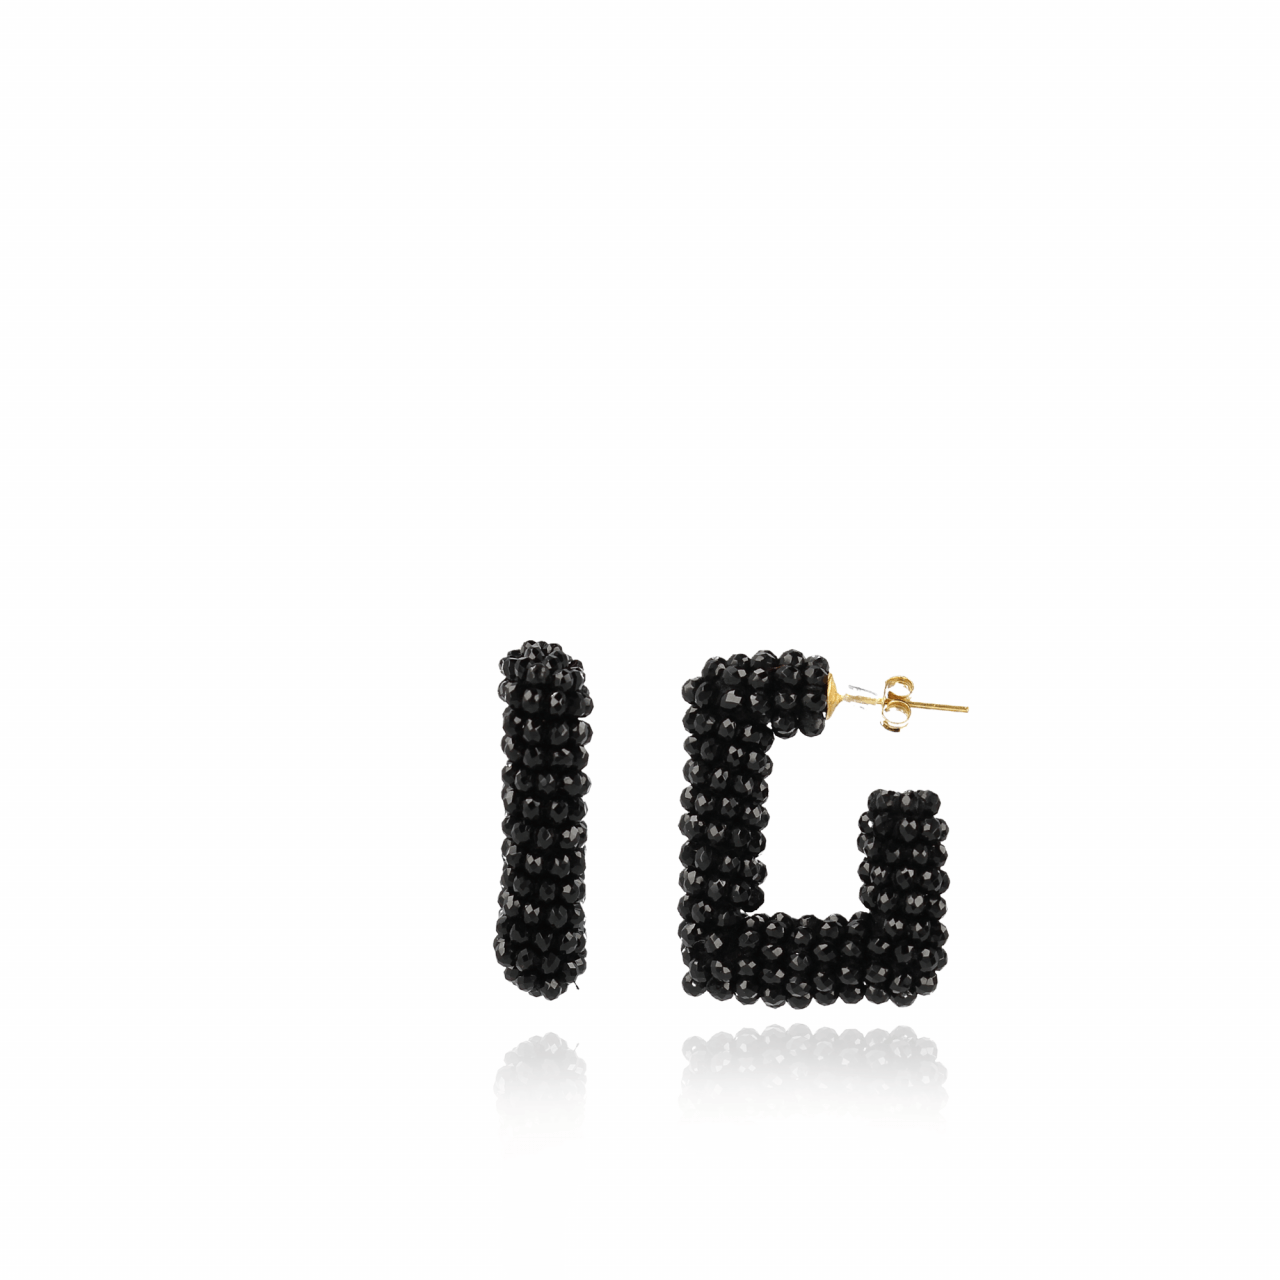 Black glassberry creole square earrings